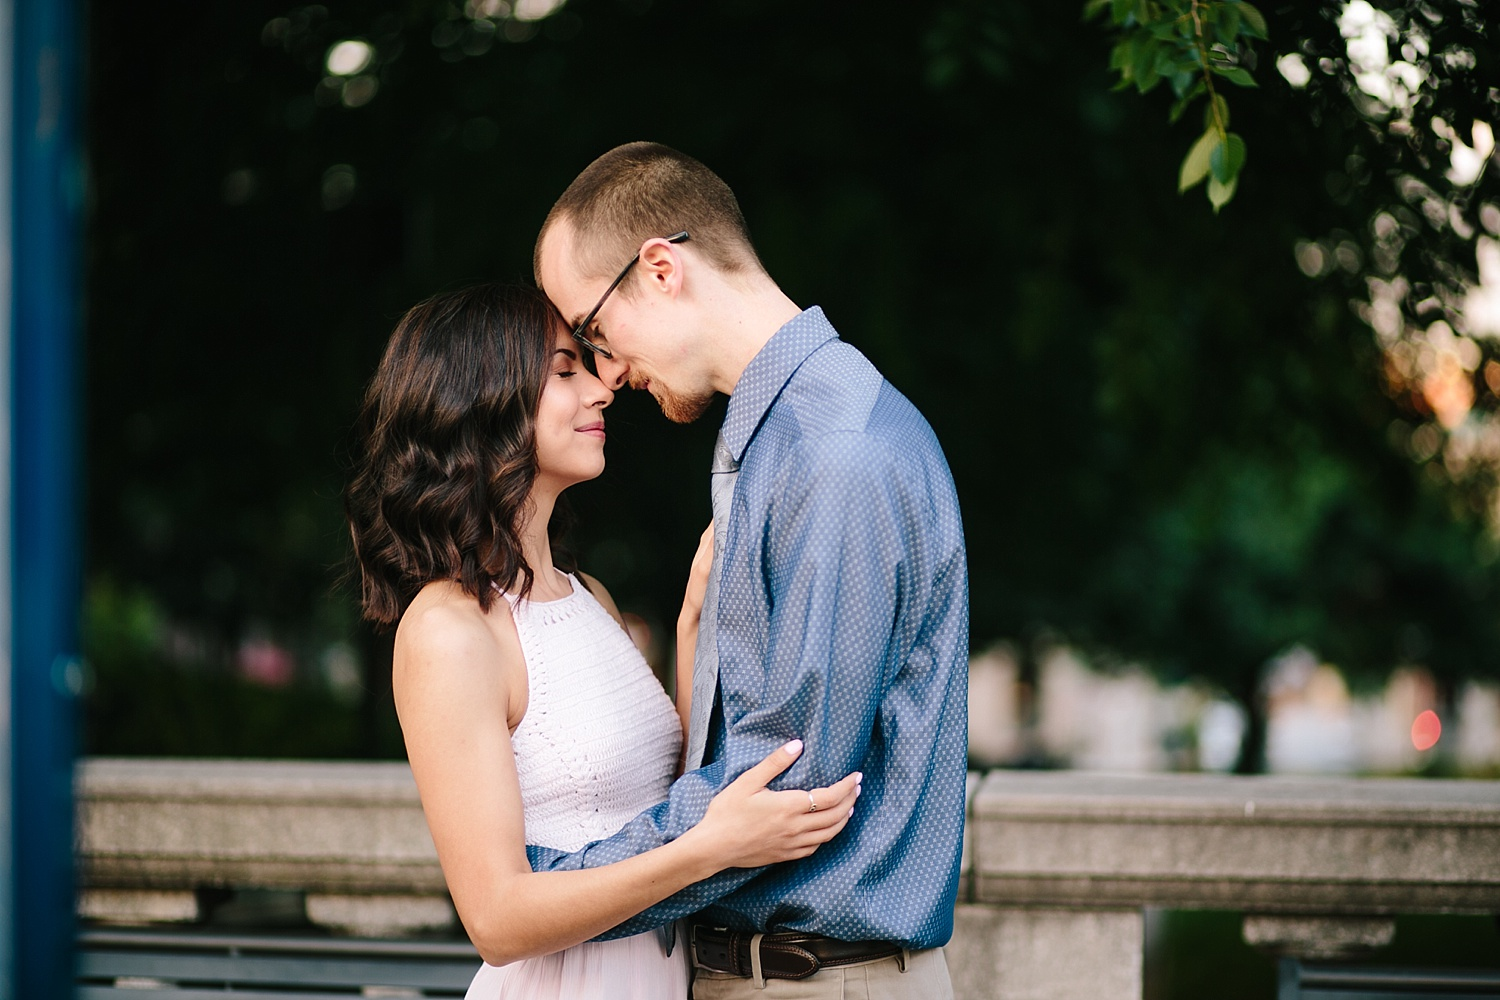 samanthaandrew_baltimore_engagement_session_image031.jpg